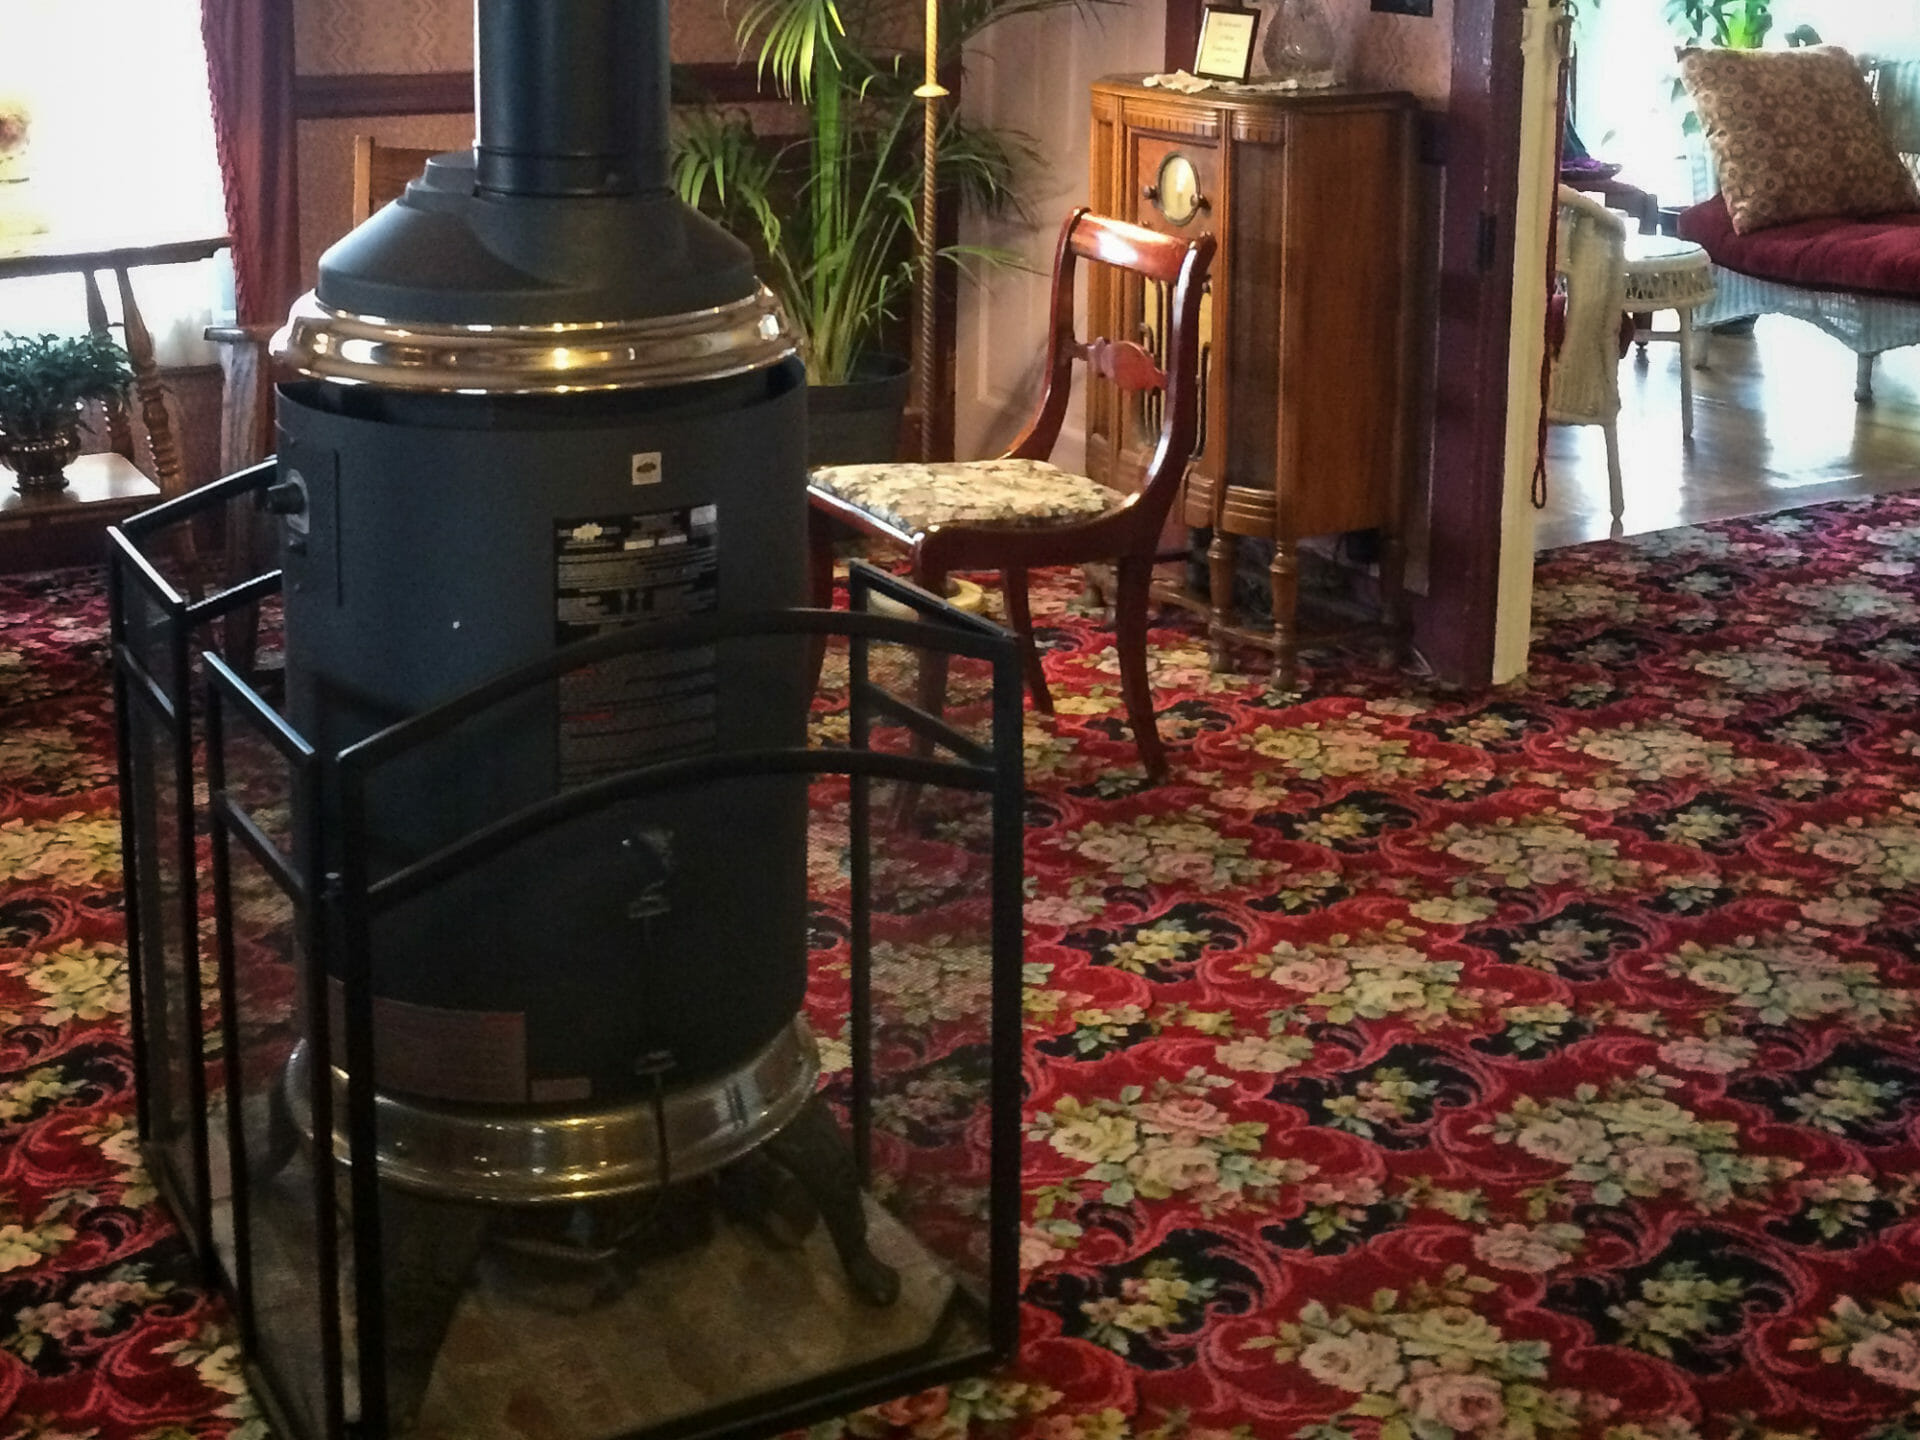 The wood stove in the hotel lobby was pumping out heat!